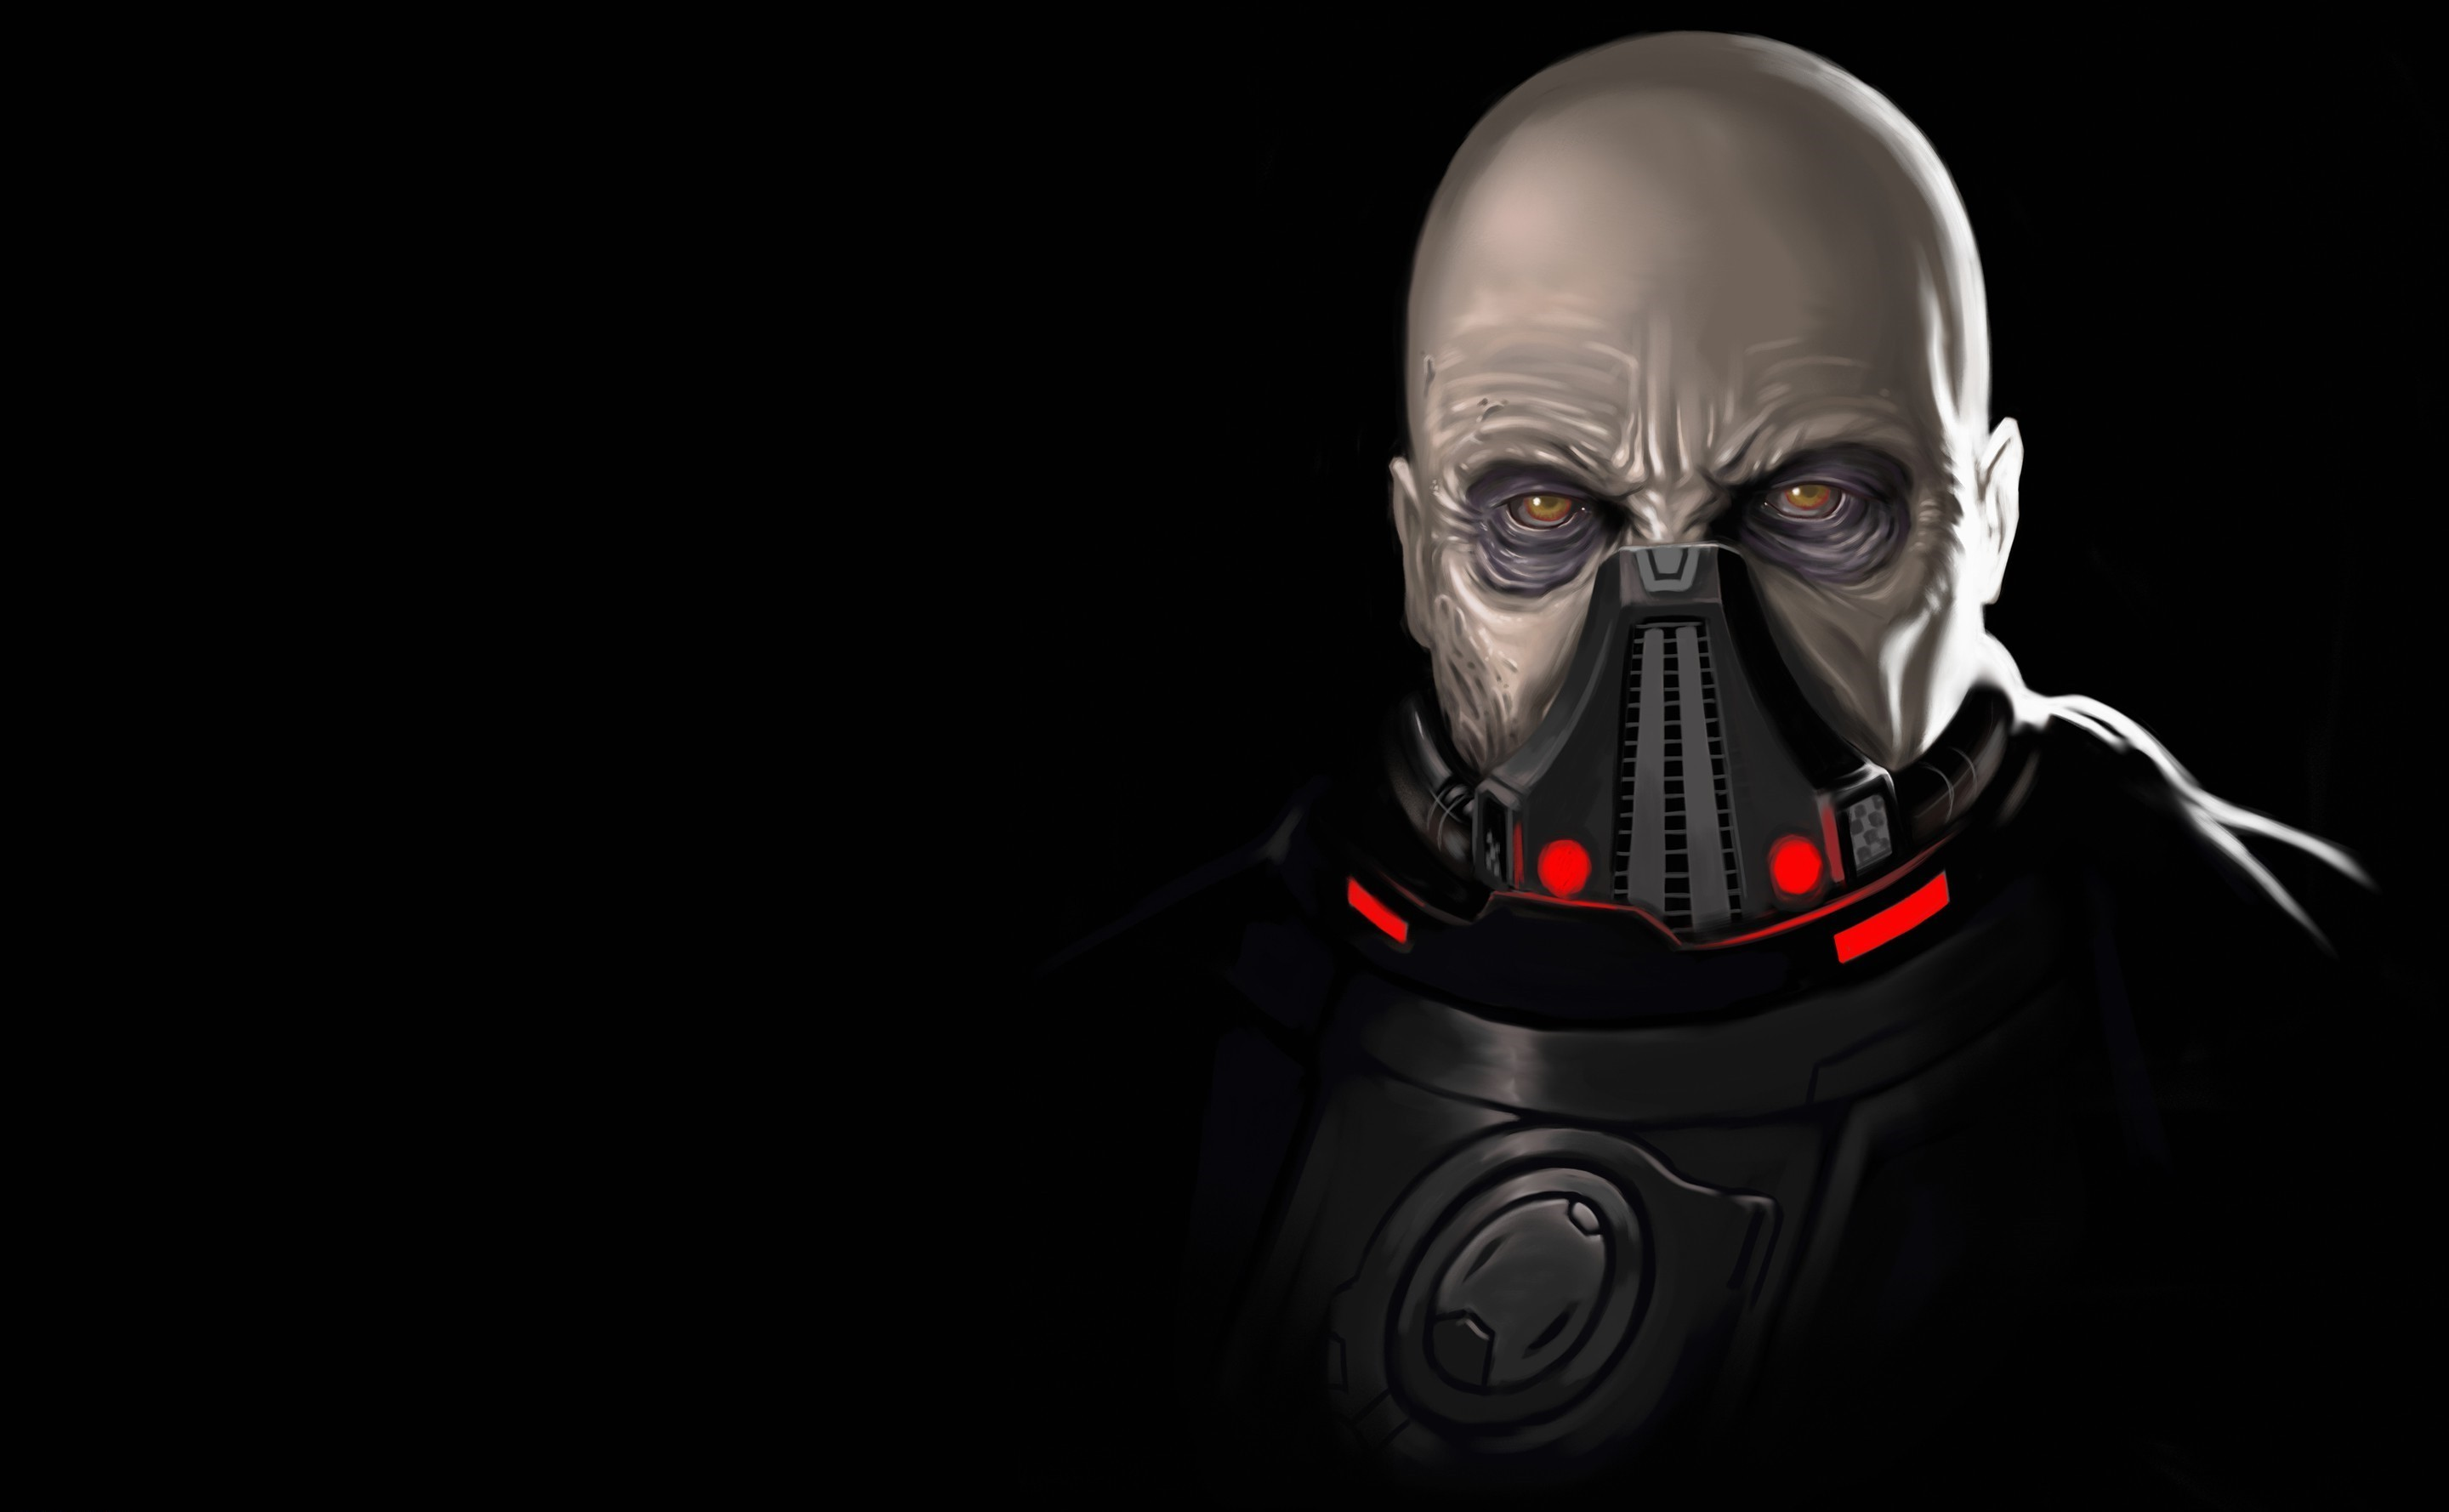 2880x1778 Star Wars, Artwork, Darth Malgus, SWTOR Wallpapers HD / Desktop and Mobile  Backgrounds